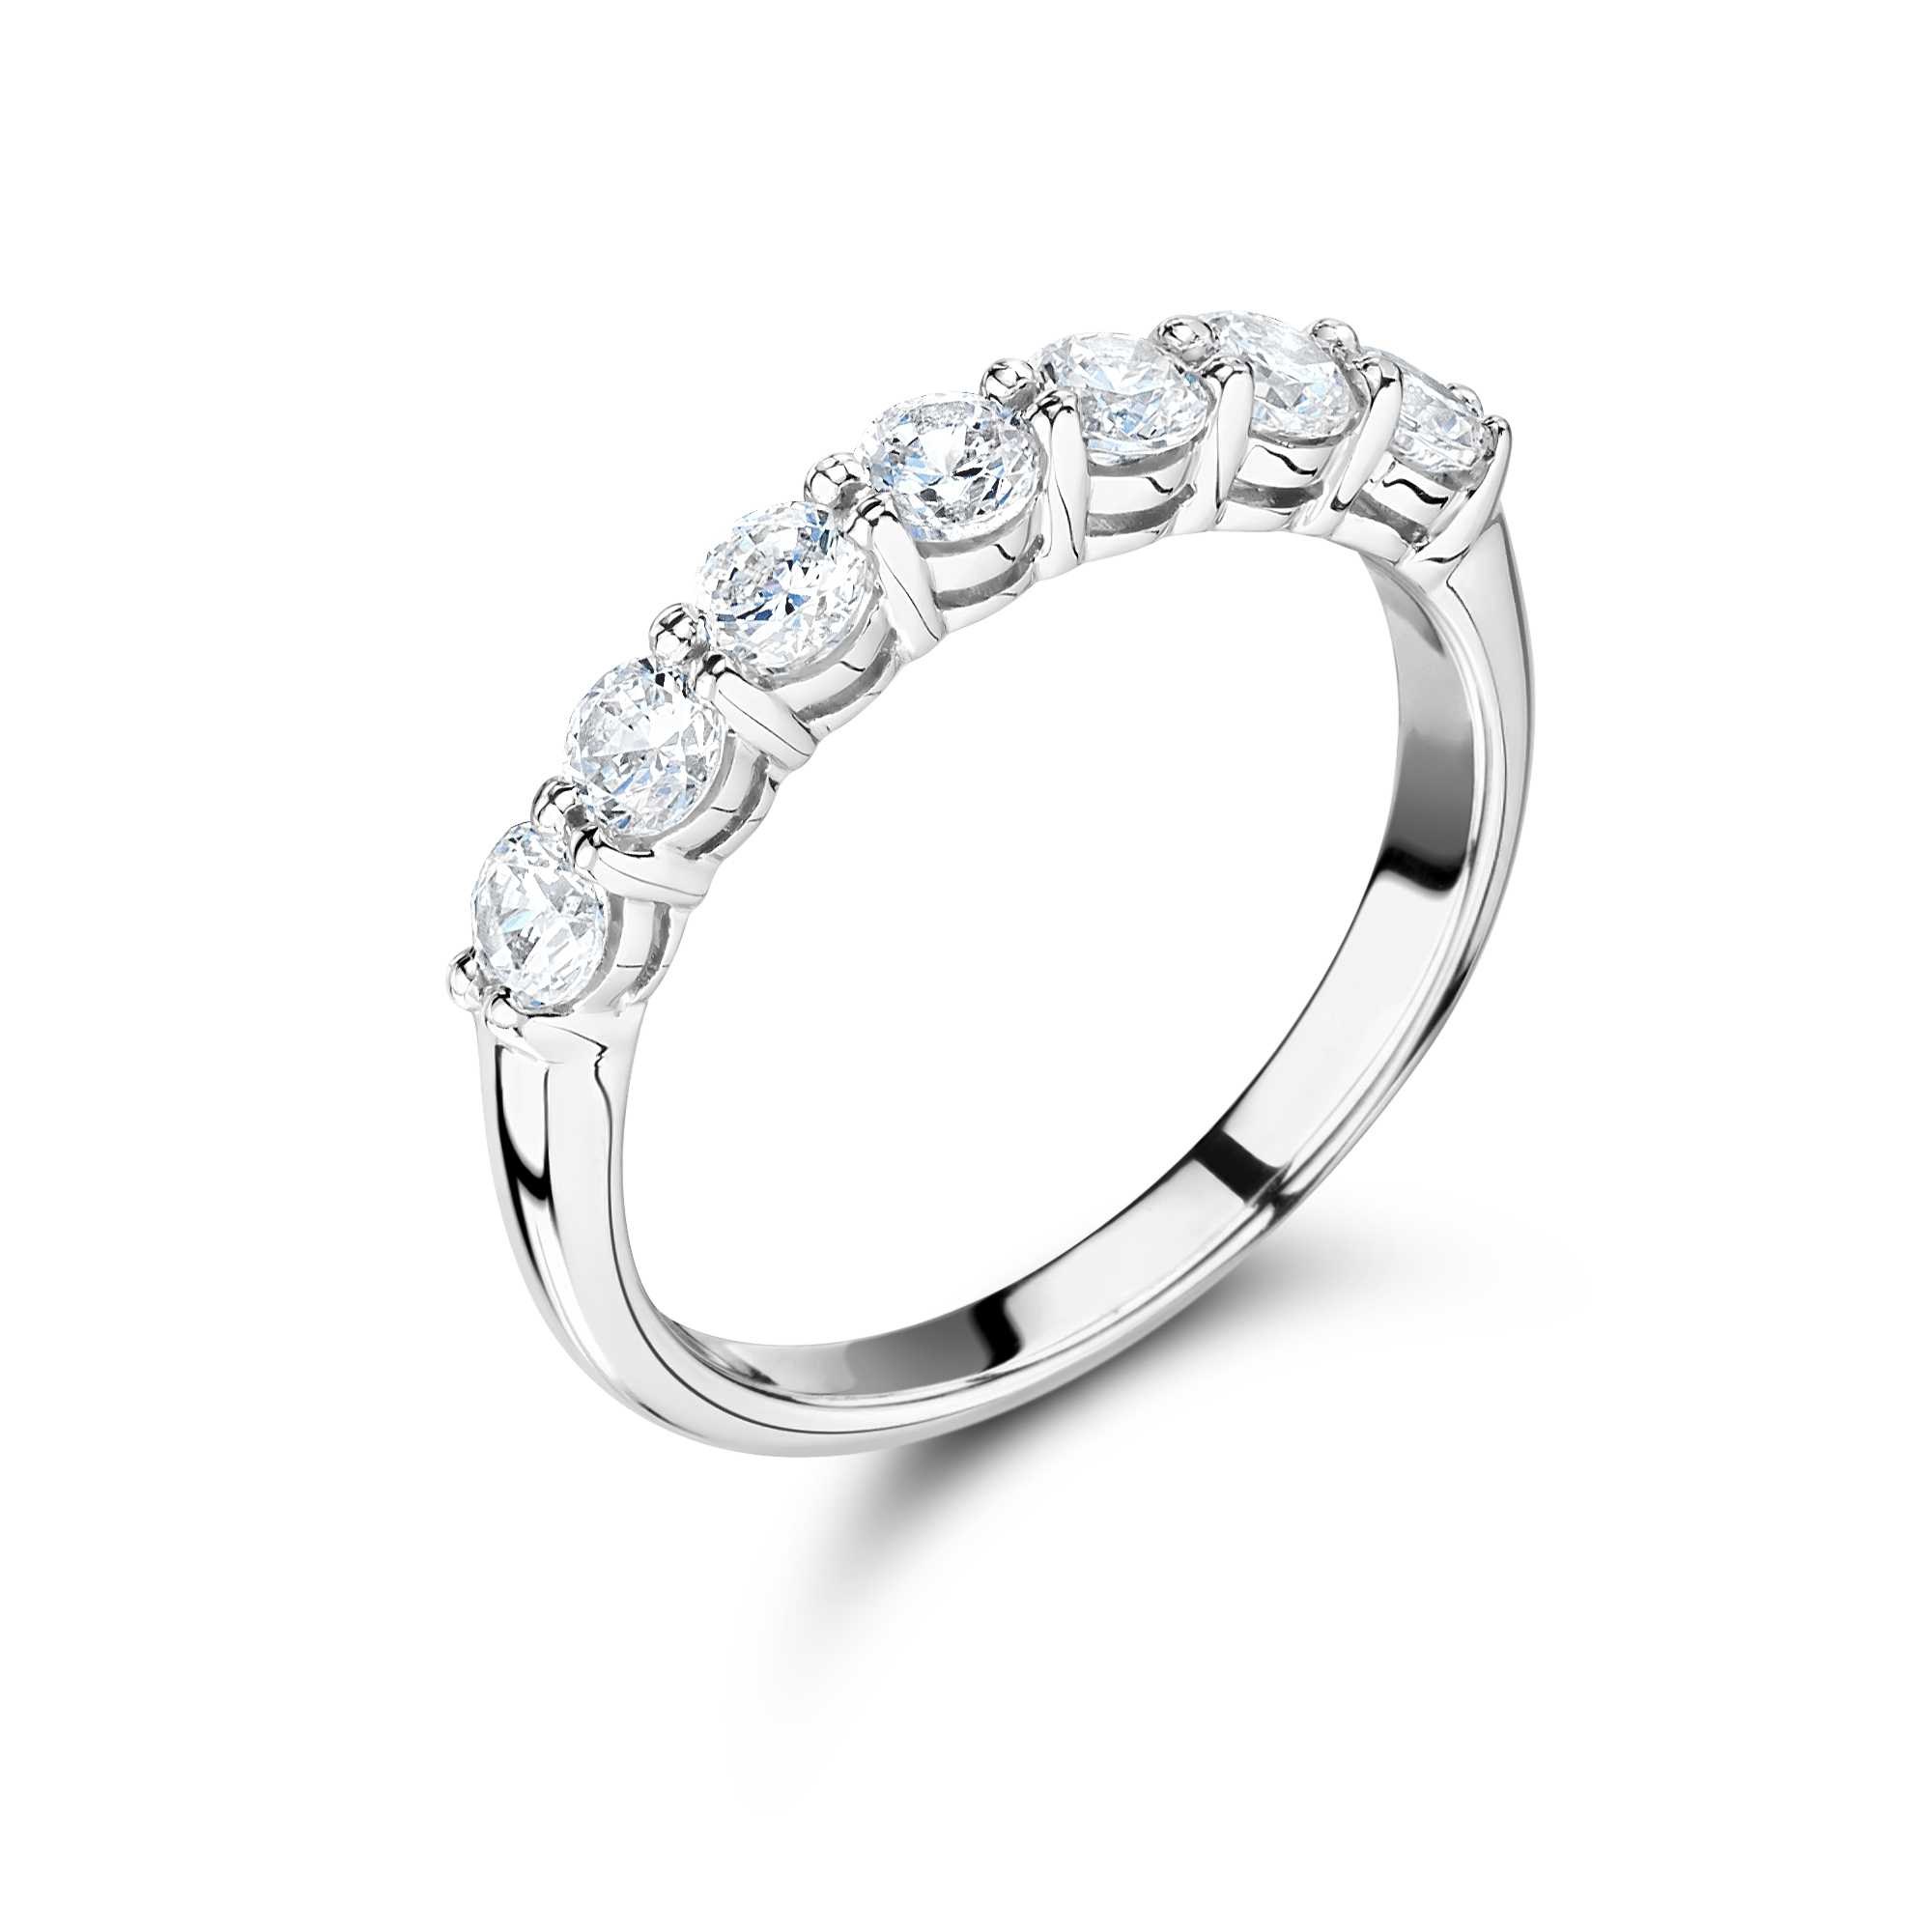 top angle for string diamonds a product shine details of classic from every rounded crescent diamond accentuating and silhouette with